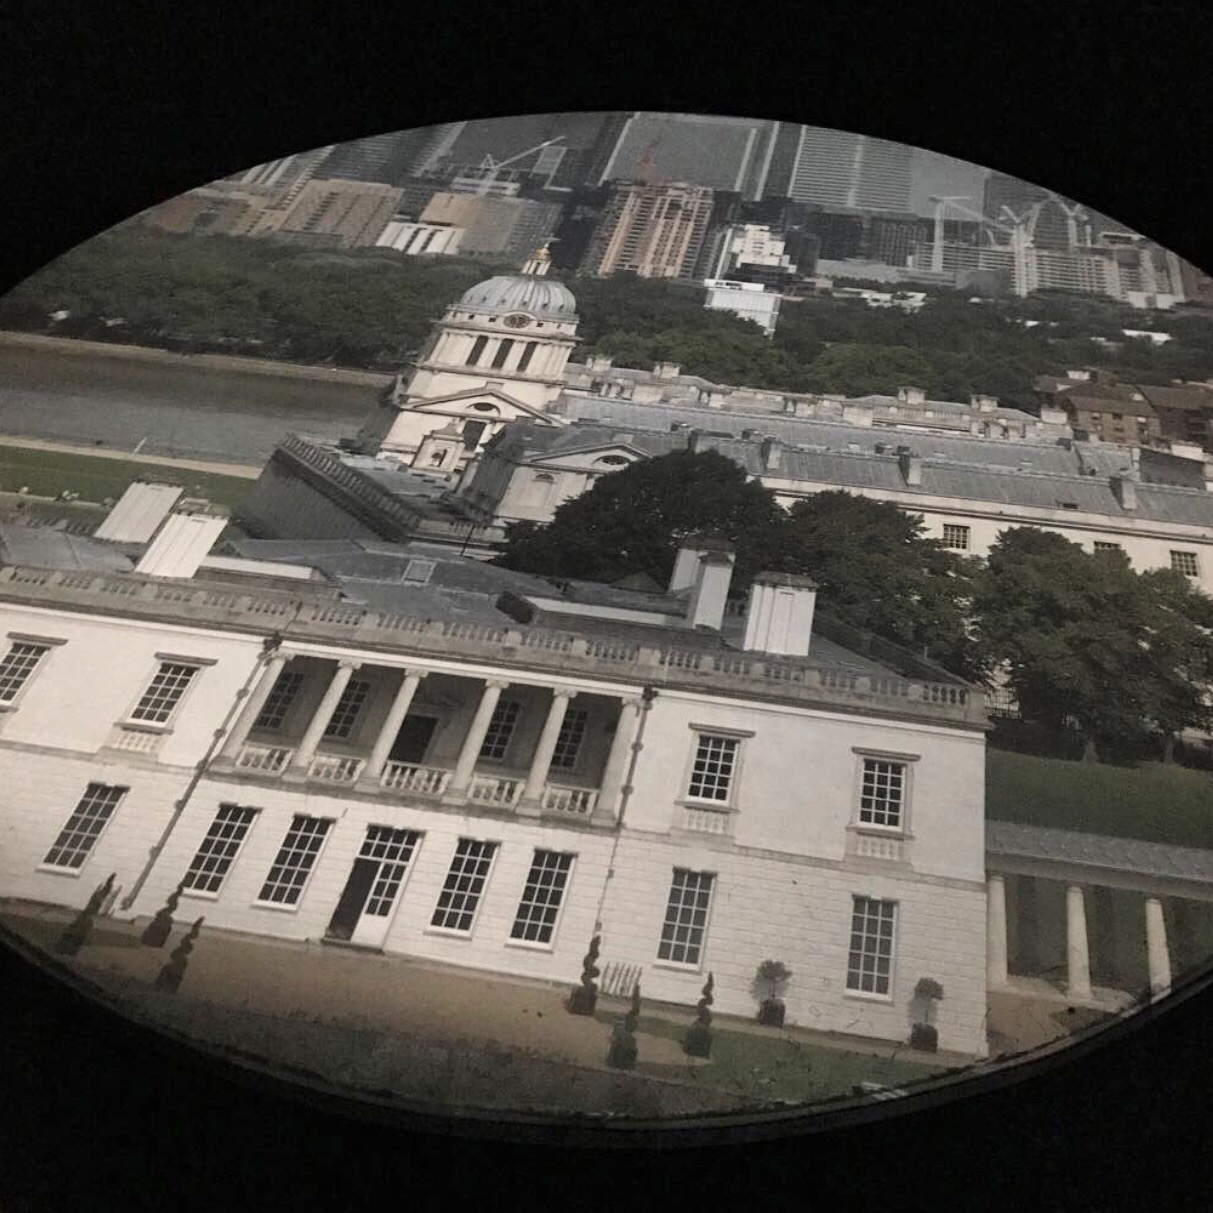 View from Camera Obscura at Royal Observatory, Greenwich